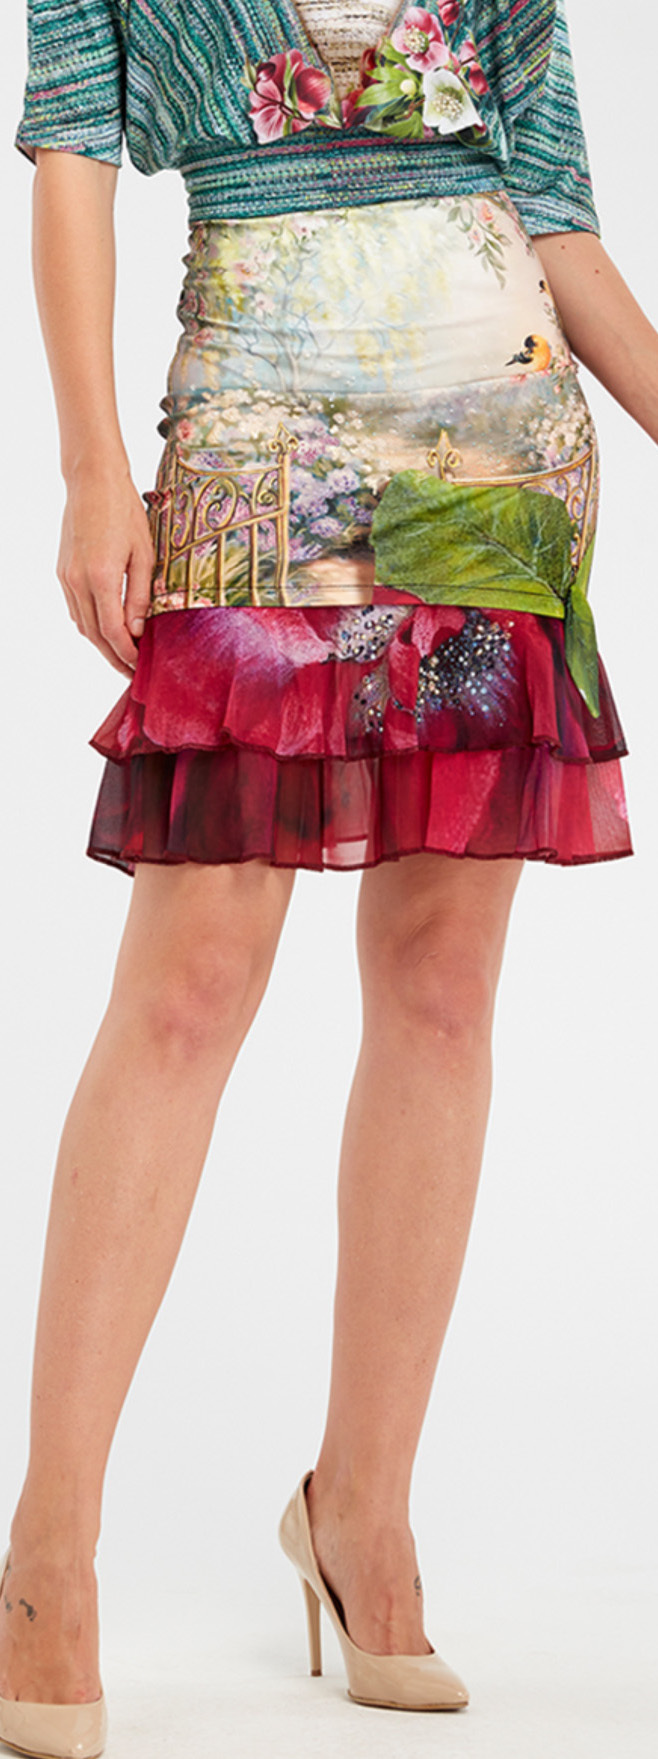 IPNG: Cherry Carnation Lace 3D Illusion Fit & Flare Mini Skirt IPNG_IPSKM-072